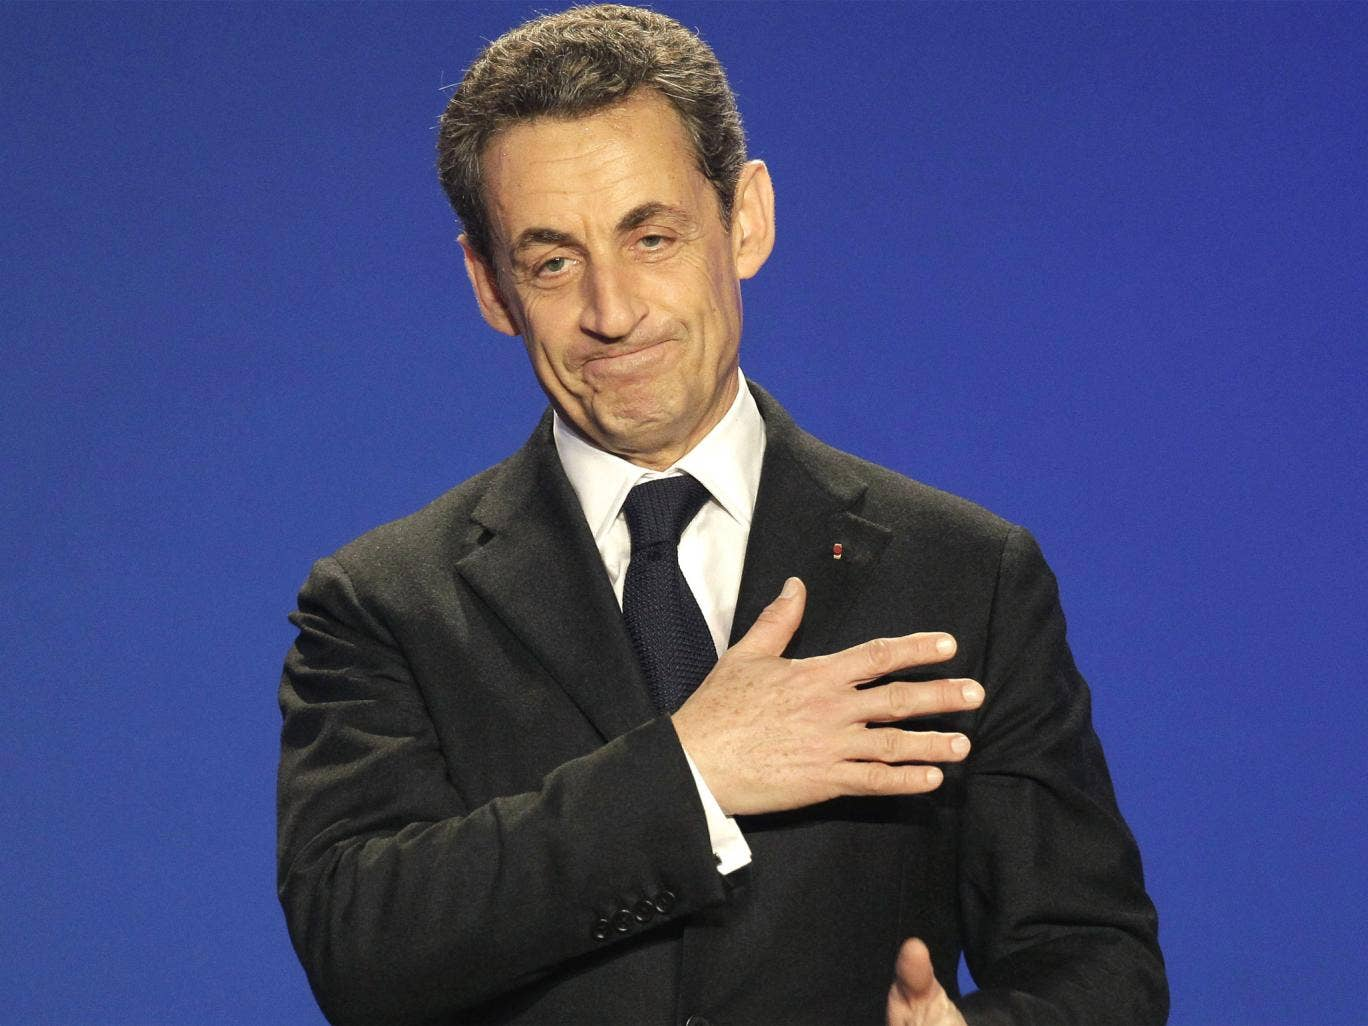 Nicolas Sarkozy officially retired from public life after last year's election defeat